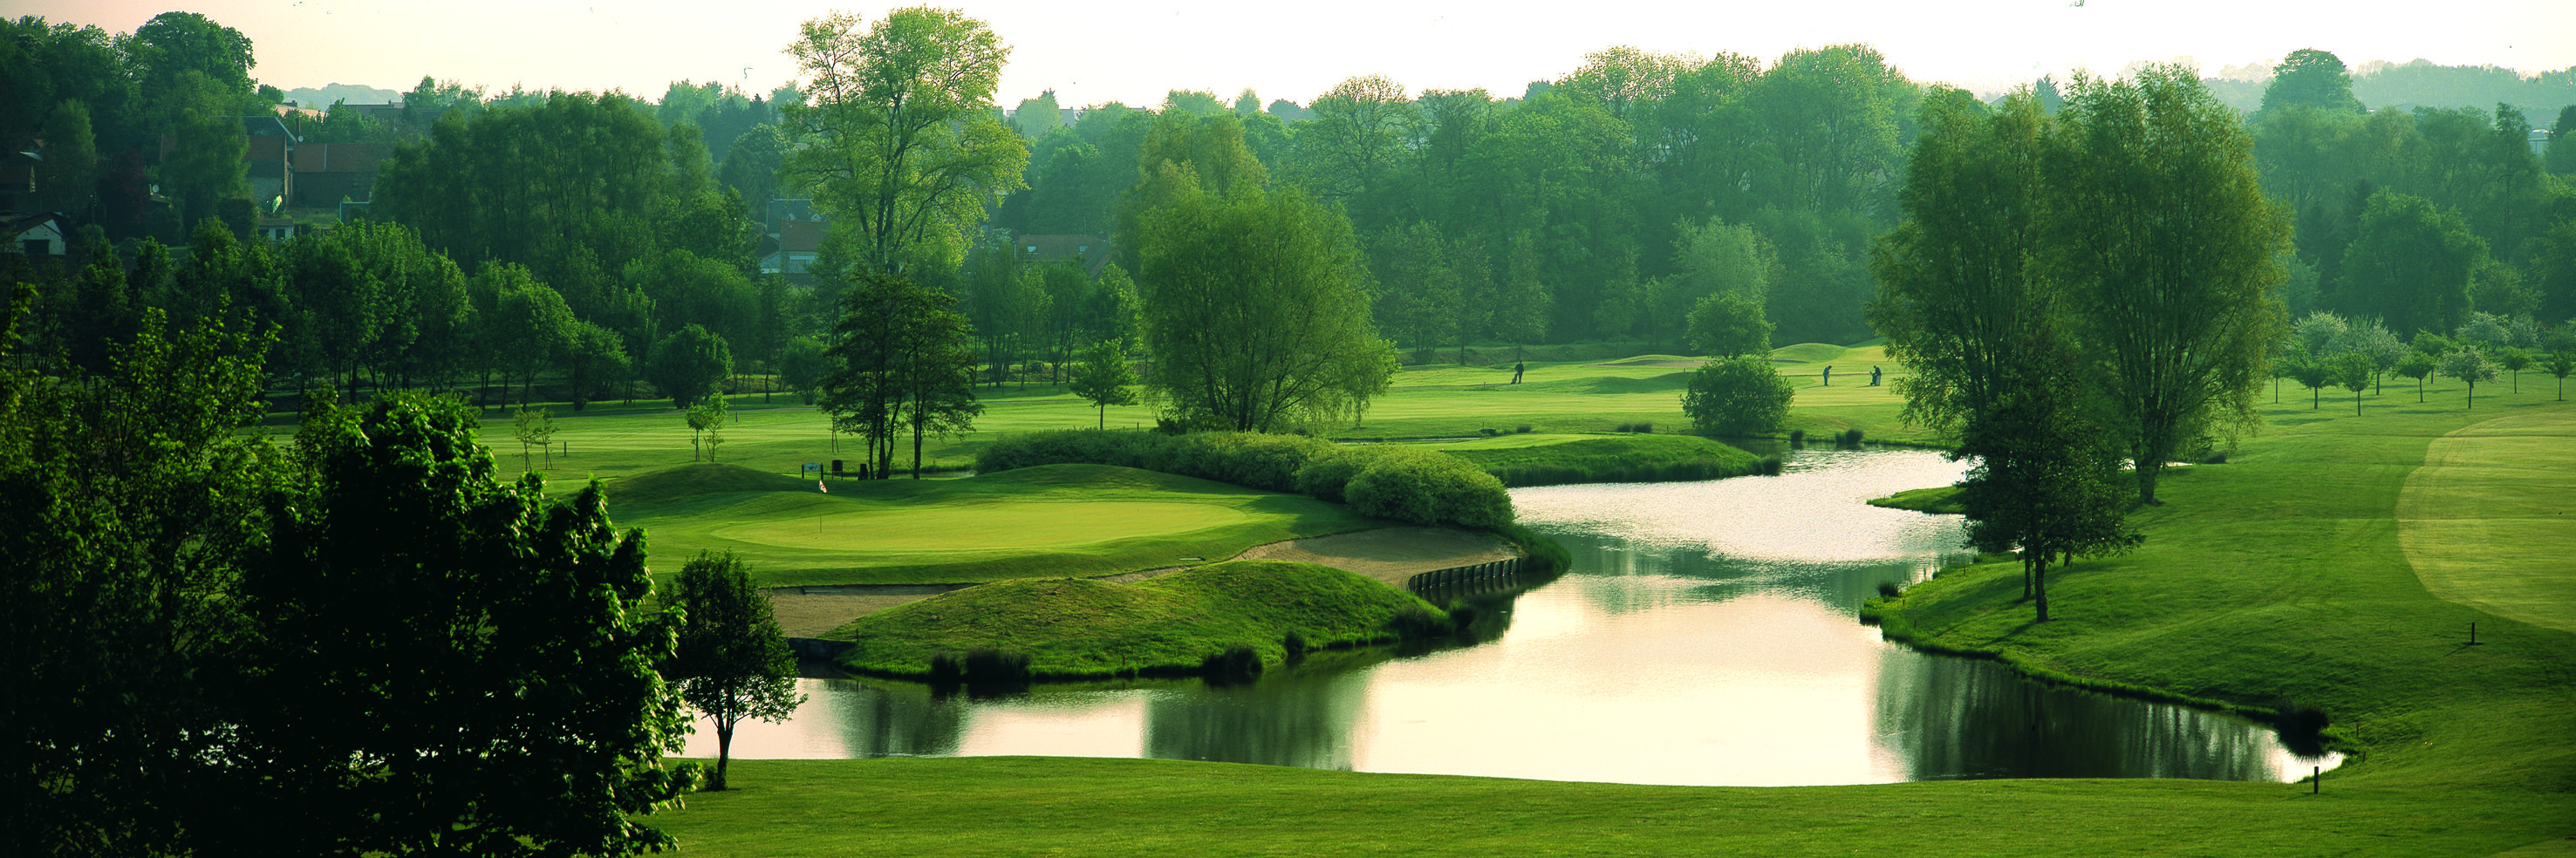 Arras golf club cover picture